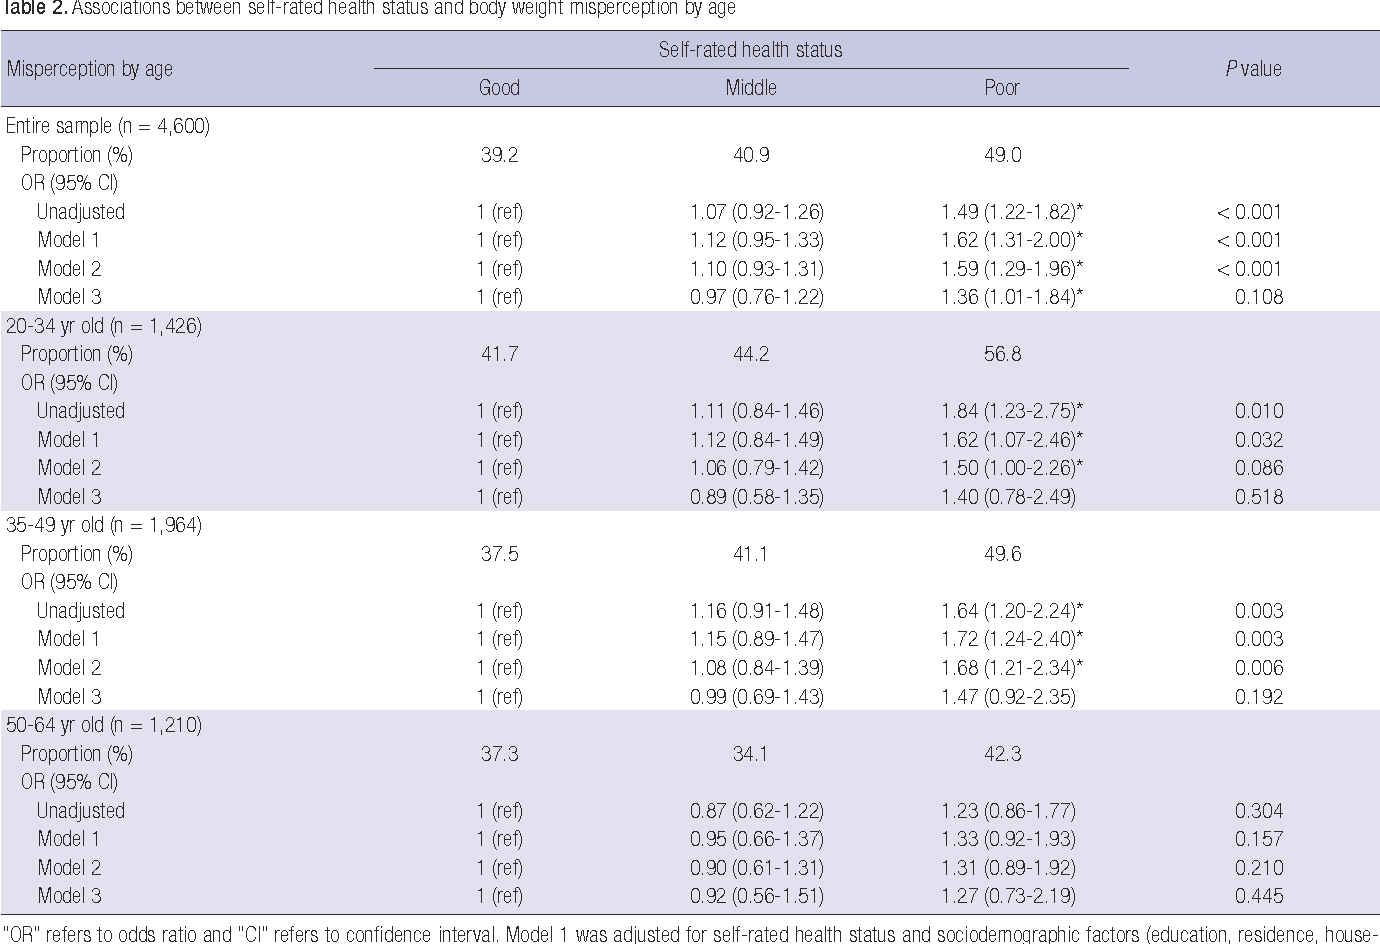 The association between body weight misperception and psychosocial table 2 nvjuhfo Images